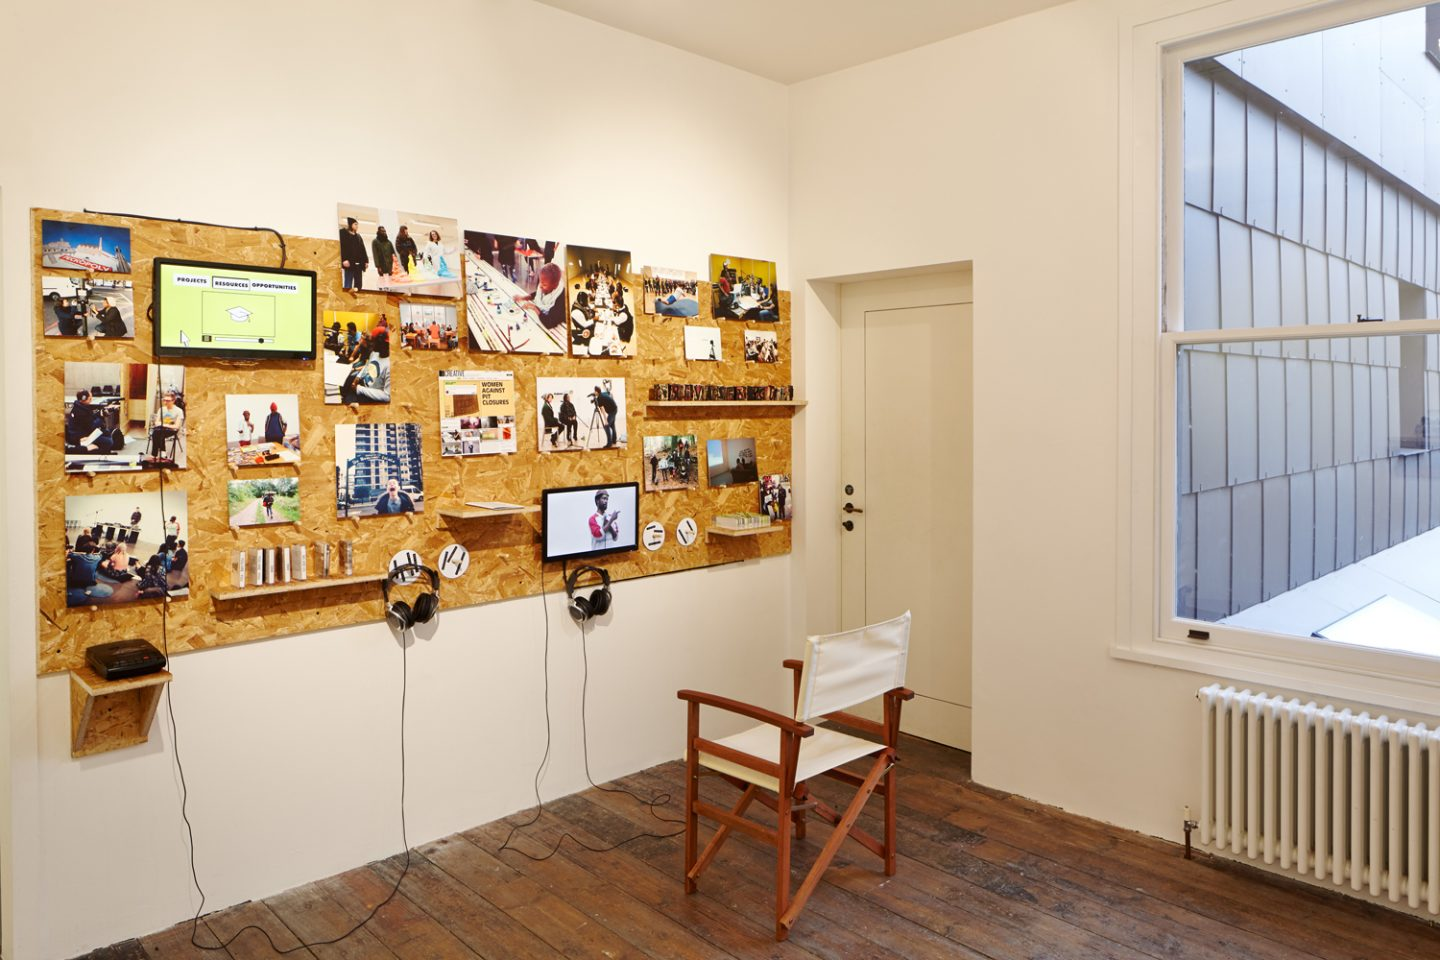 Installation view from Invisible Hours, 2014. Photo: Andy Stagg